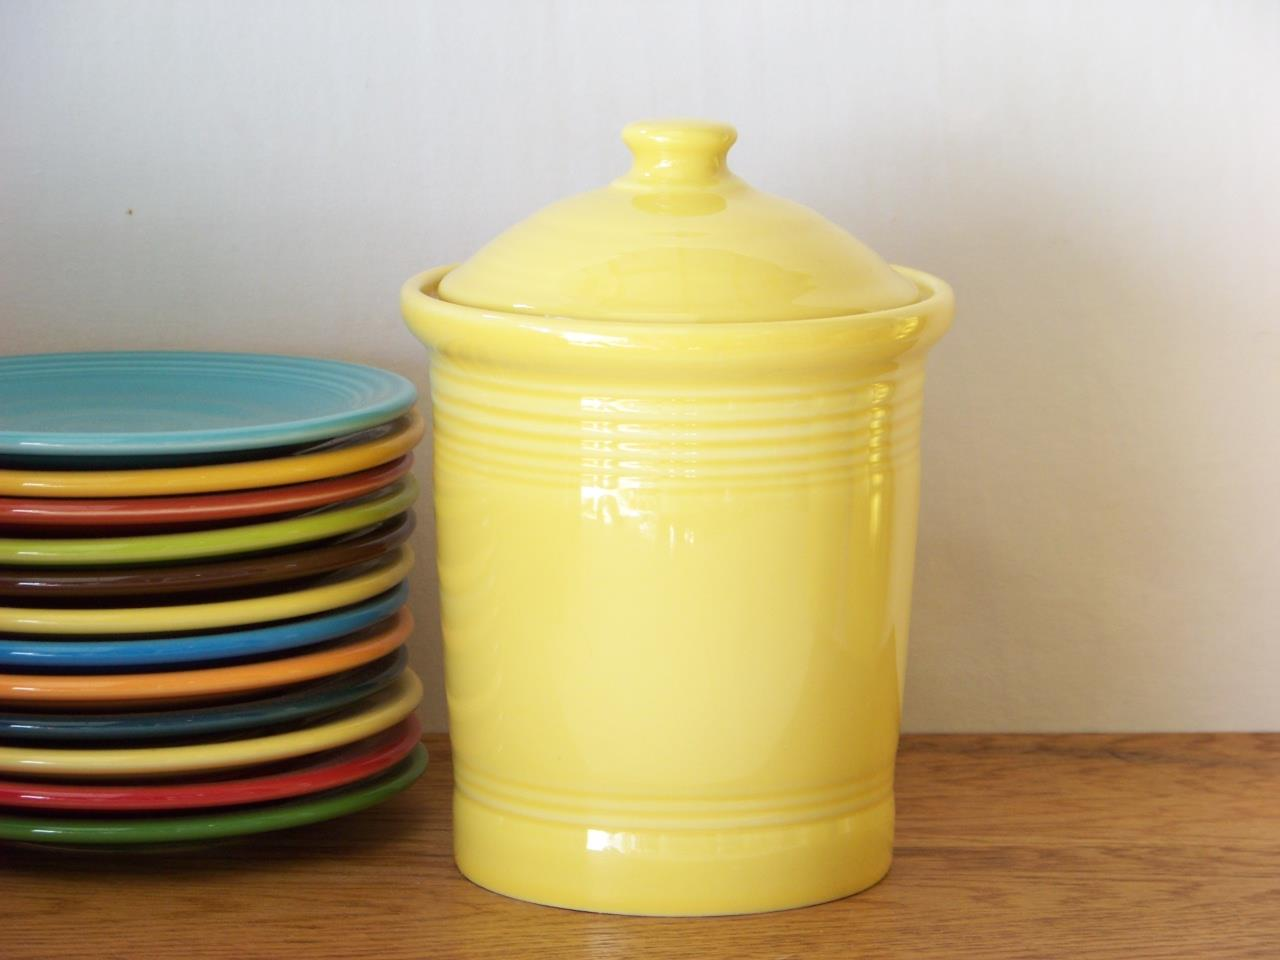 Fiesta-Small-Canister-1st-Quality-Choice-of-Colors thumbnail 4